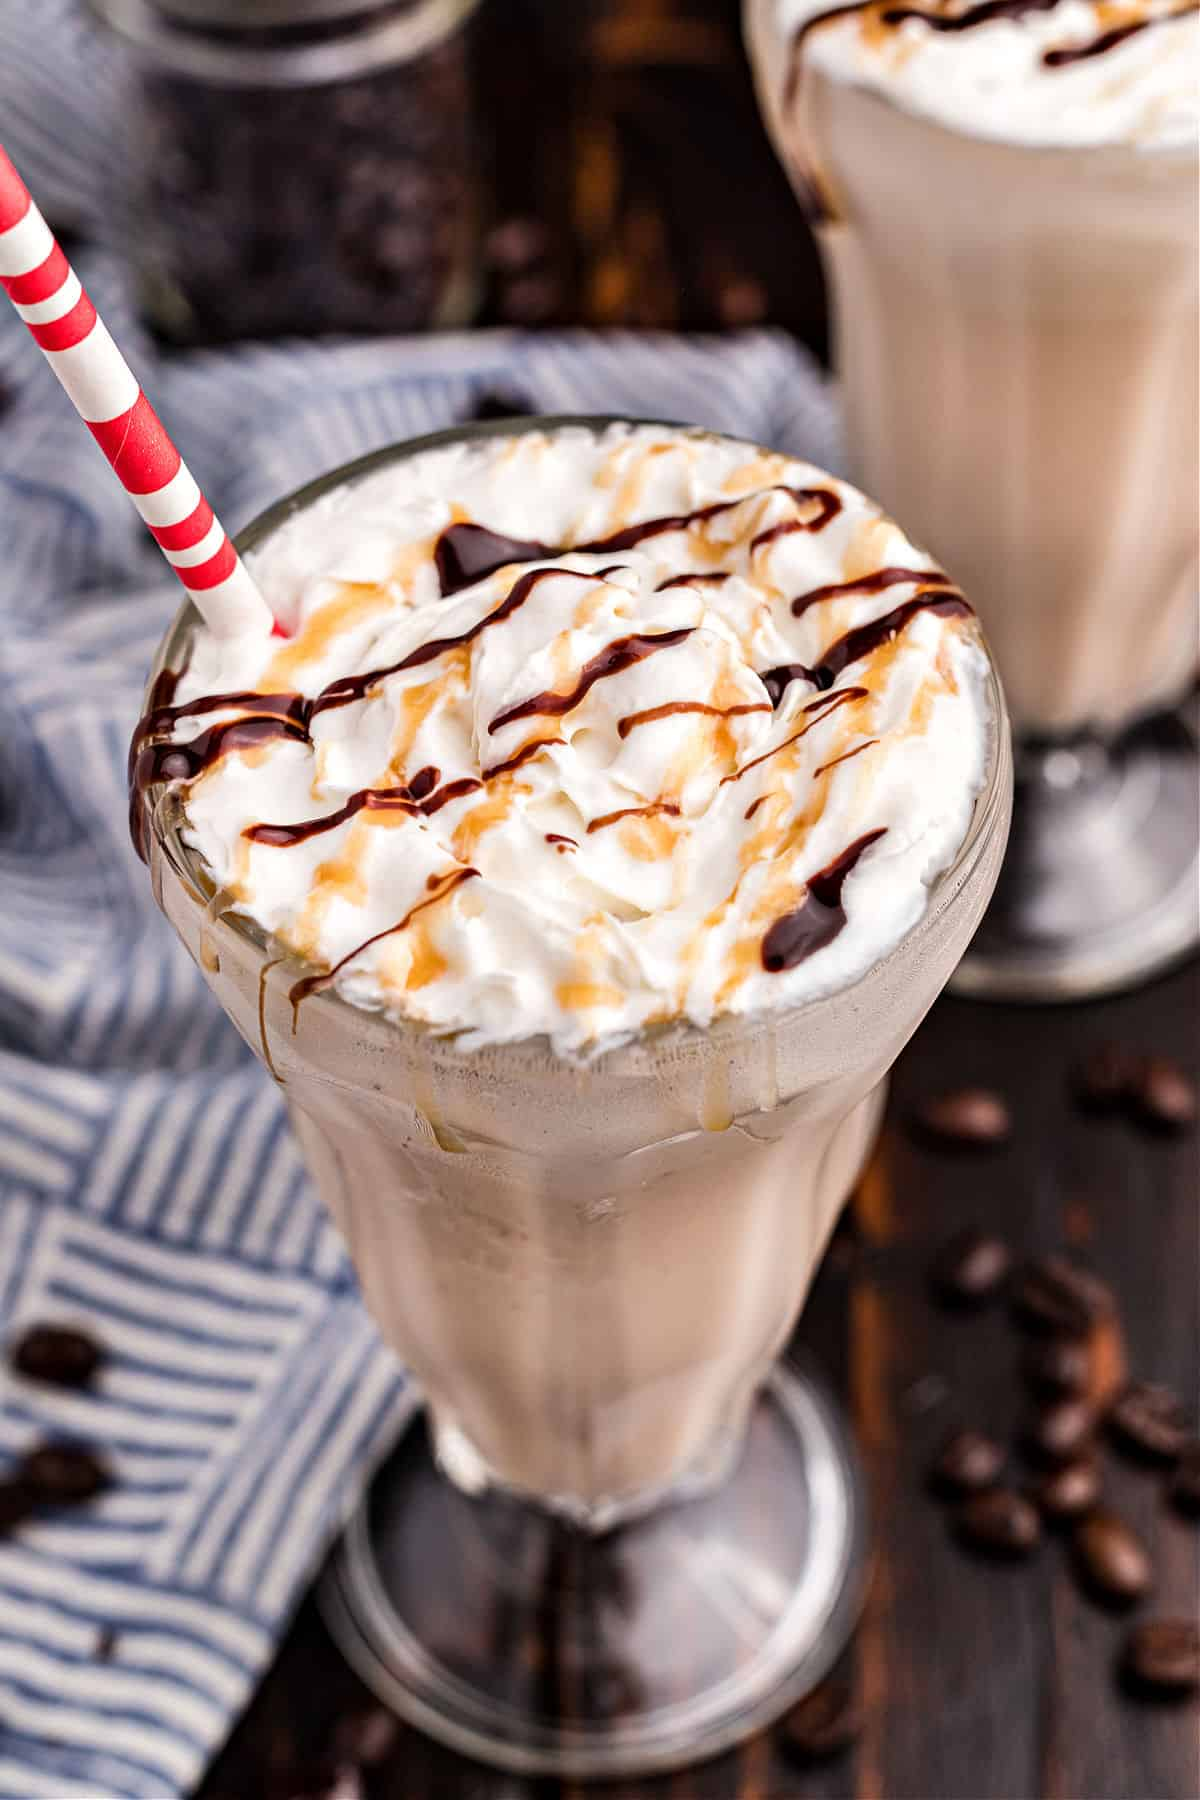 Coffee milkshake in a glass with caramel and chocolate drizzled on top.